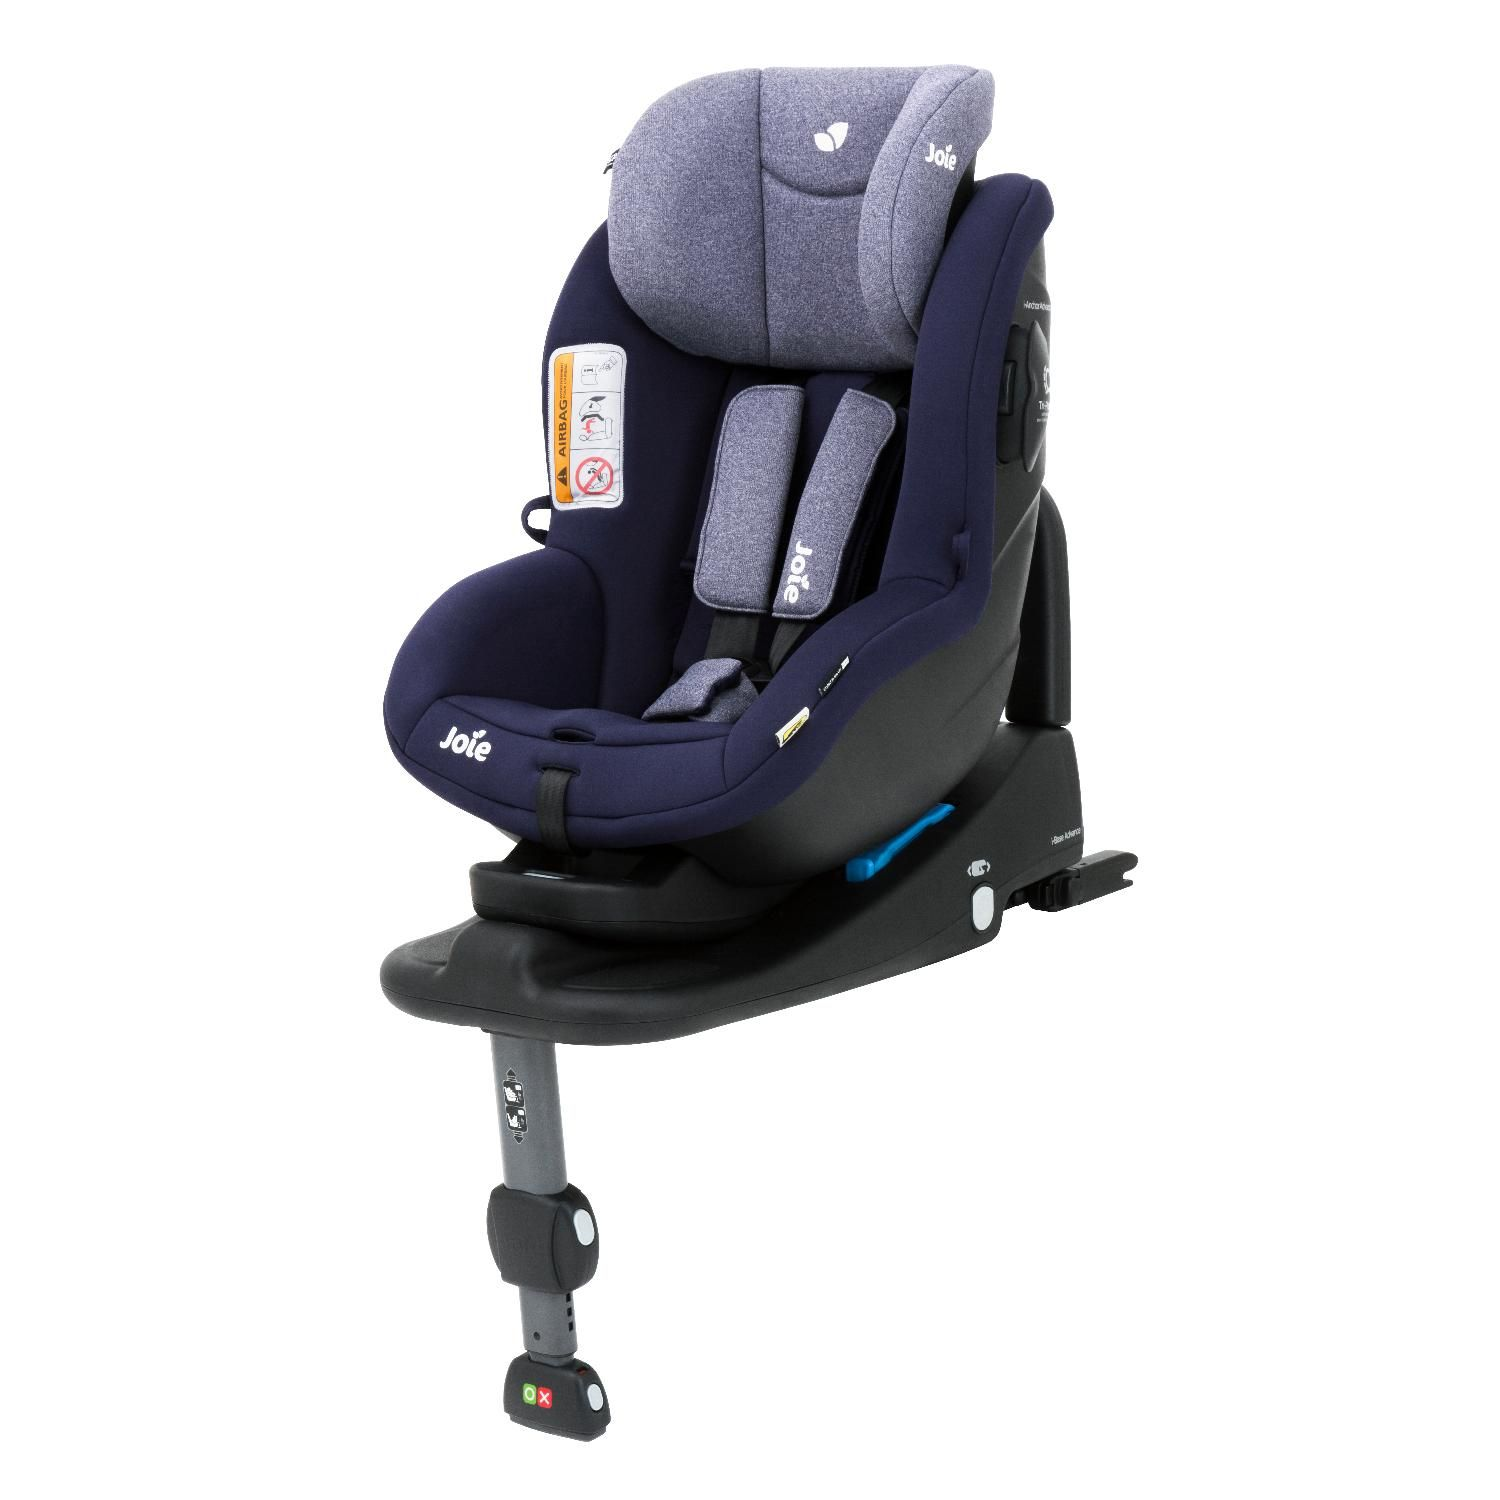 joie i anchor advance eclipse with i base advance baby car seats kids room. Black Bedroom Furniture Sets. Home Design Ideas